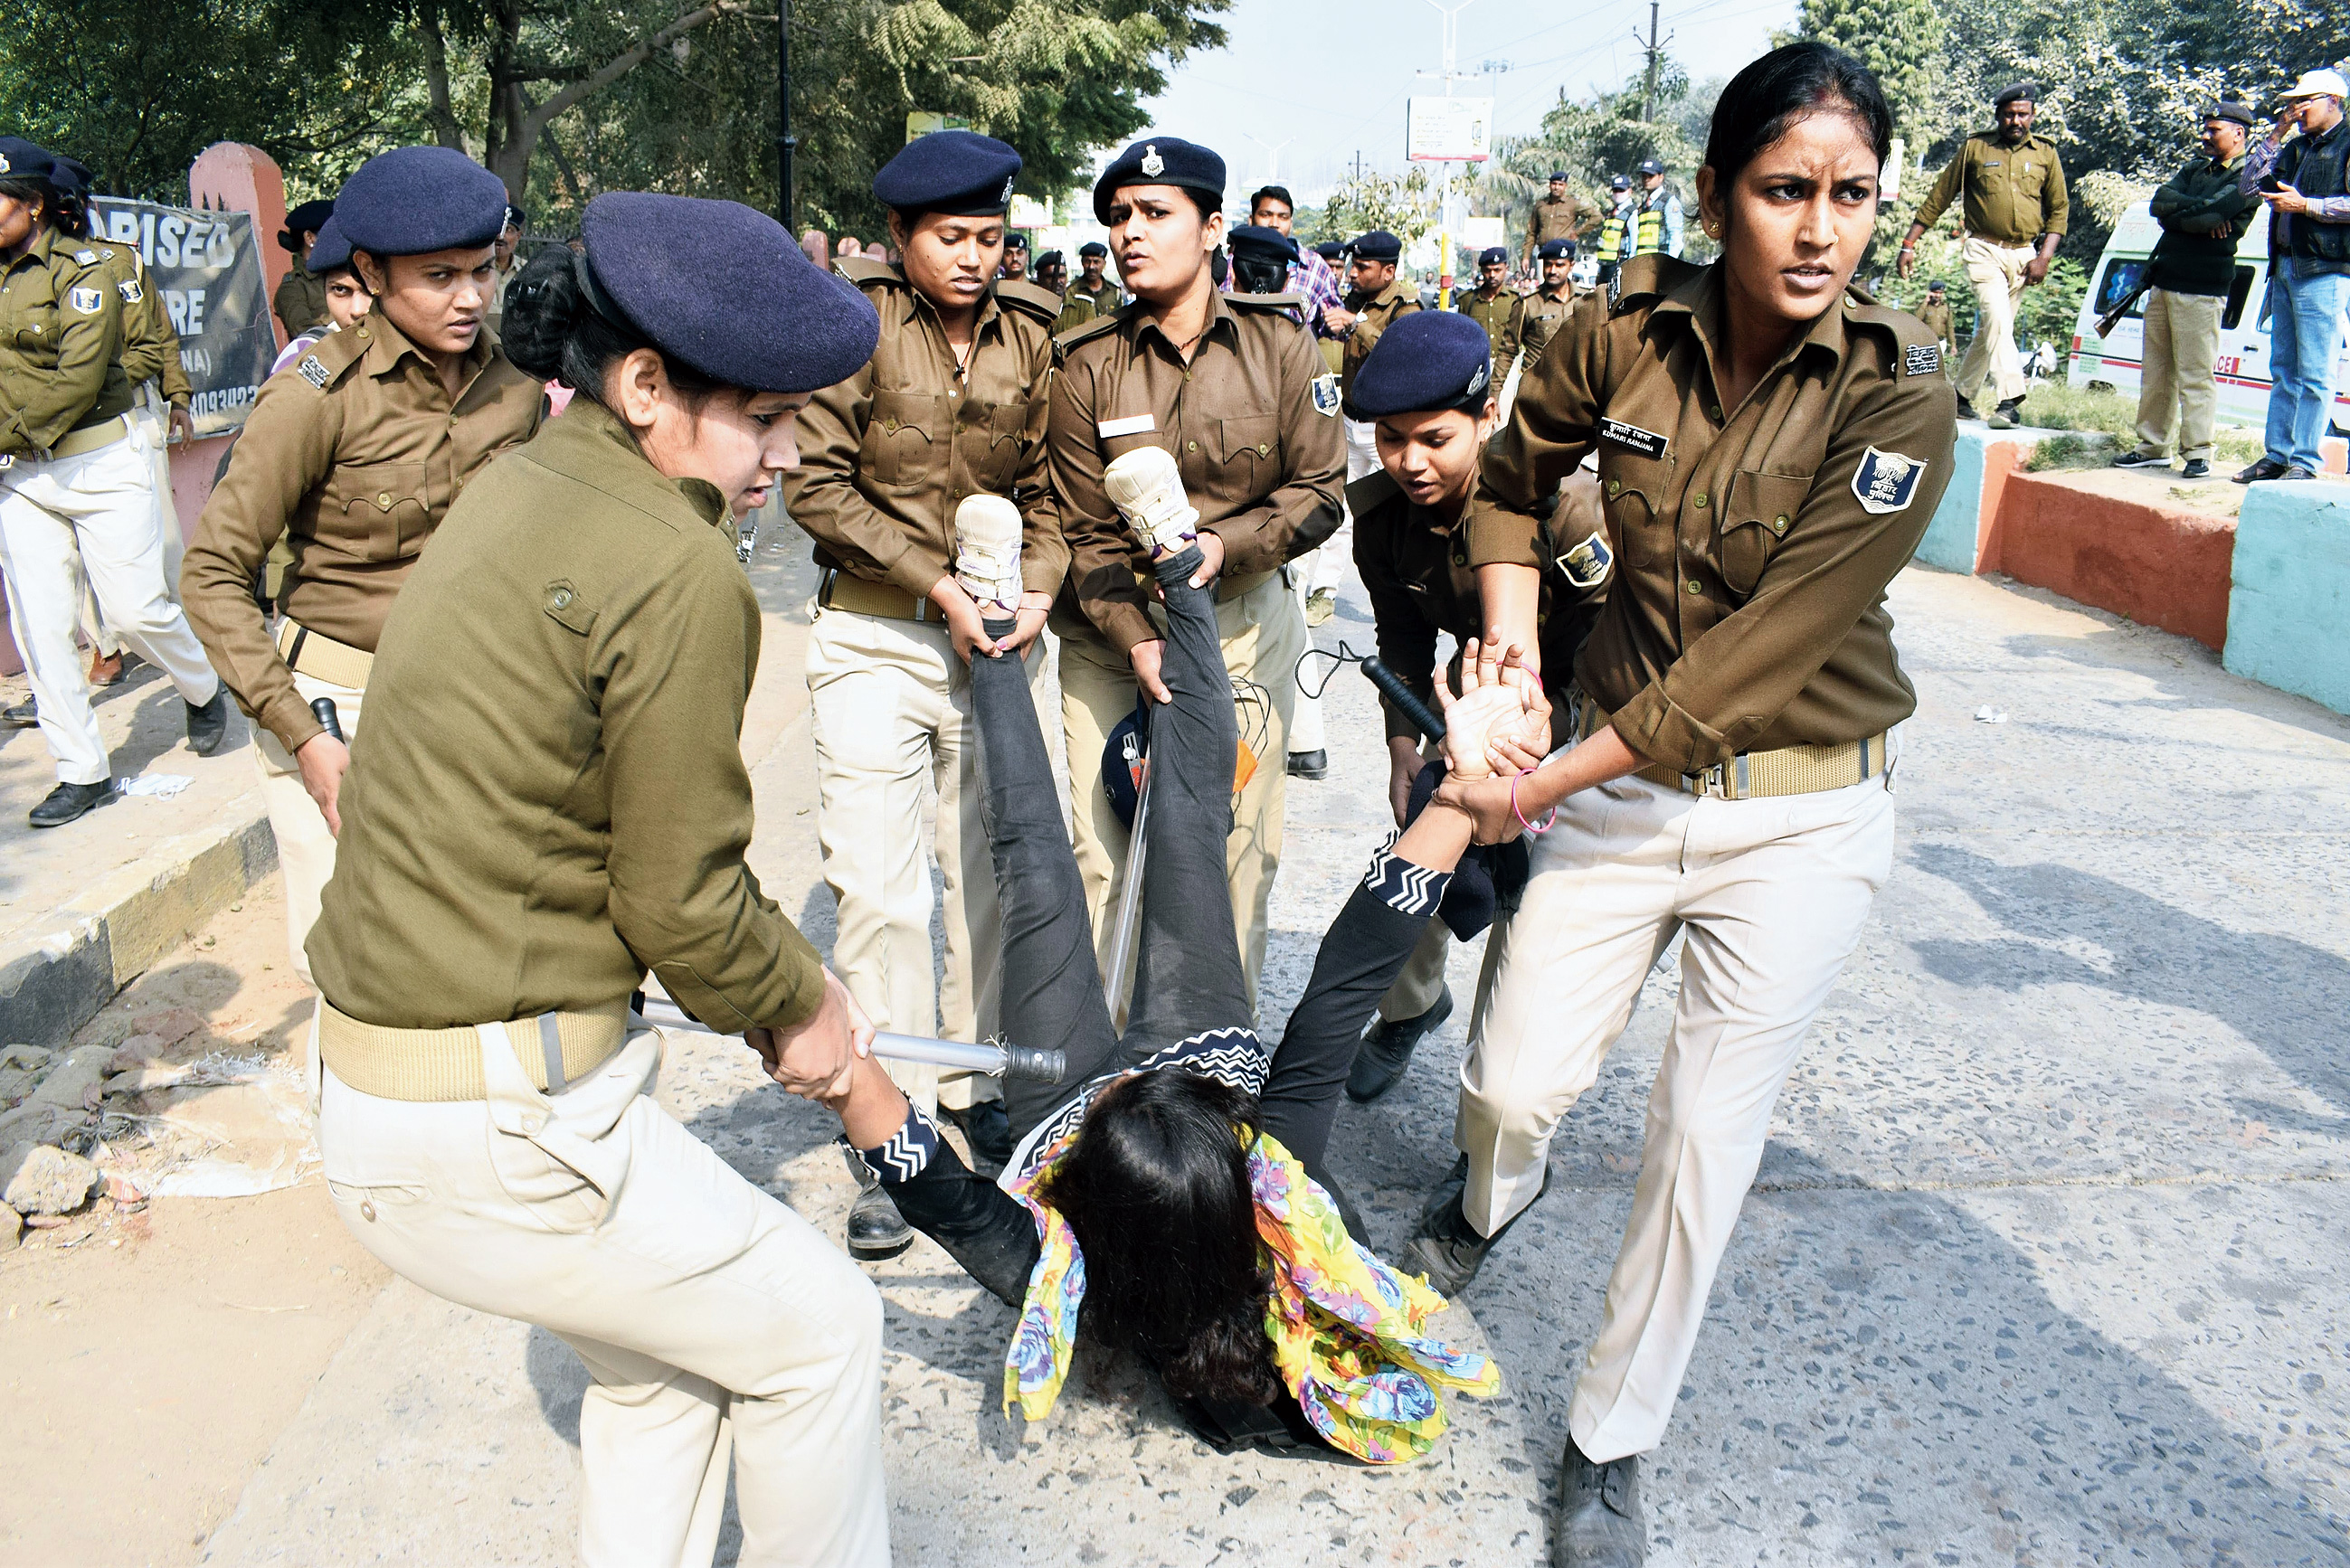 Policewomen lift away a nursing student during the protest on the IGIMS campus on Tuesday.